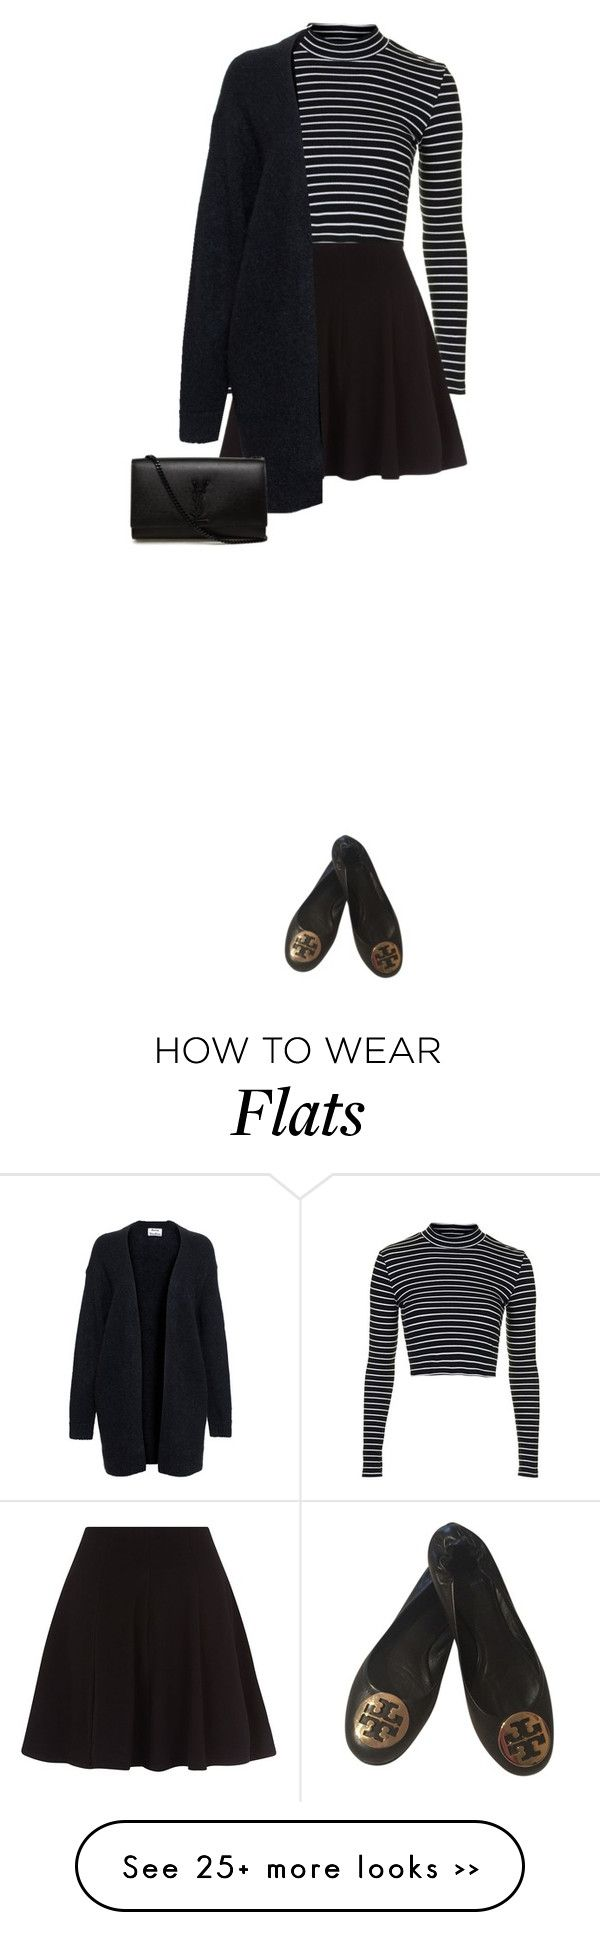 """""""OOTD No.68"""" by katrina-yeow on Polyvore featuring Topshop, Acne Studios, Tory Burch and Yves Saint Laurent"""